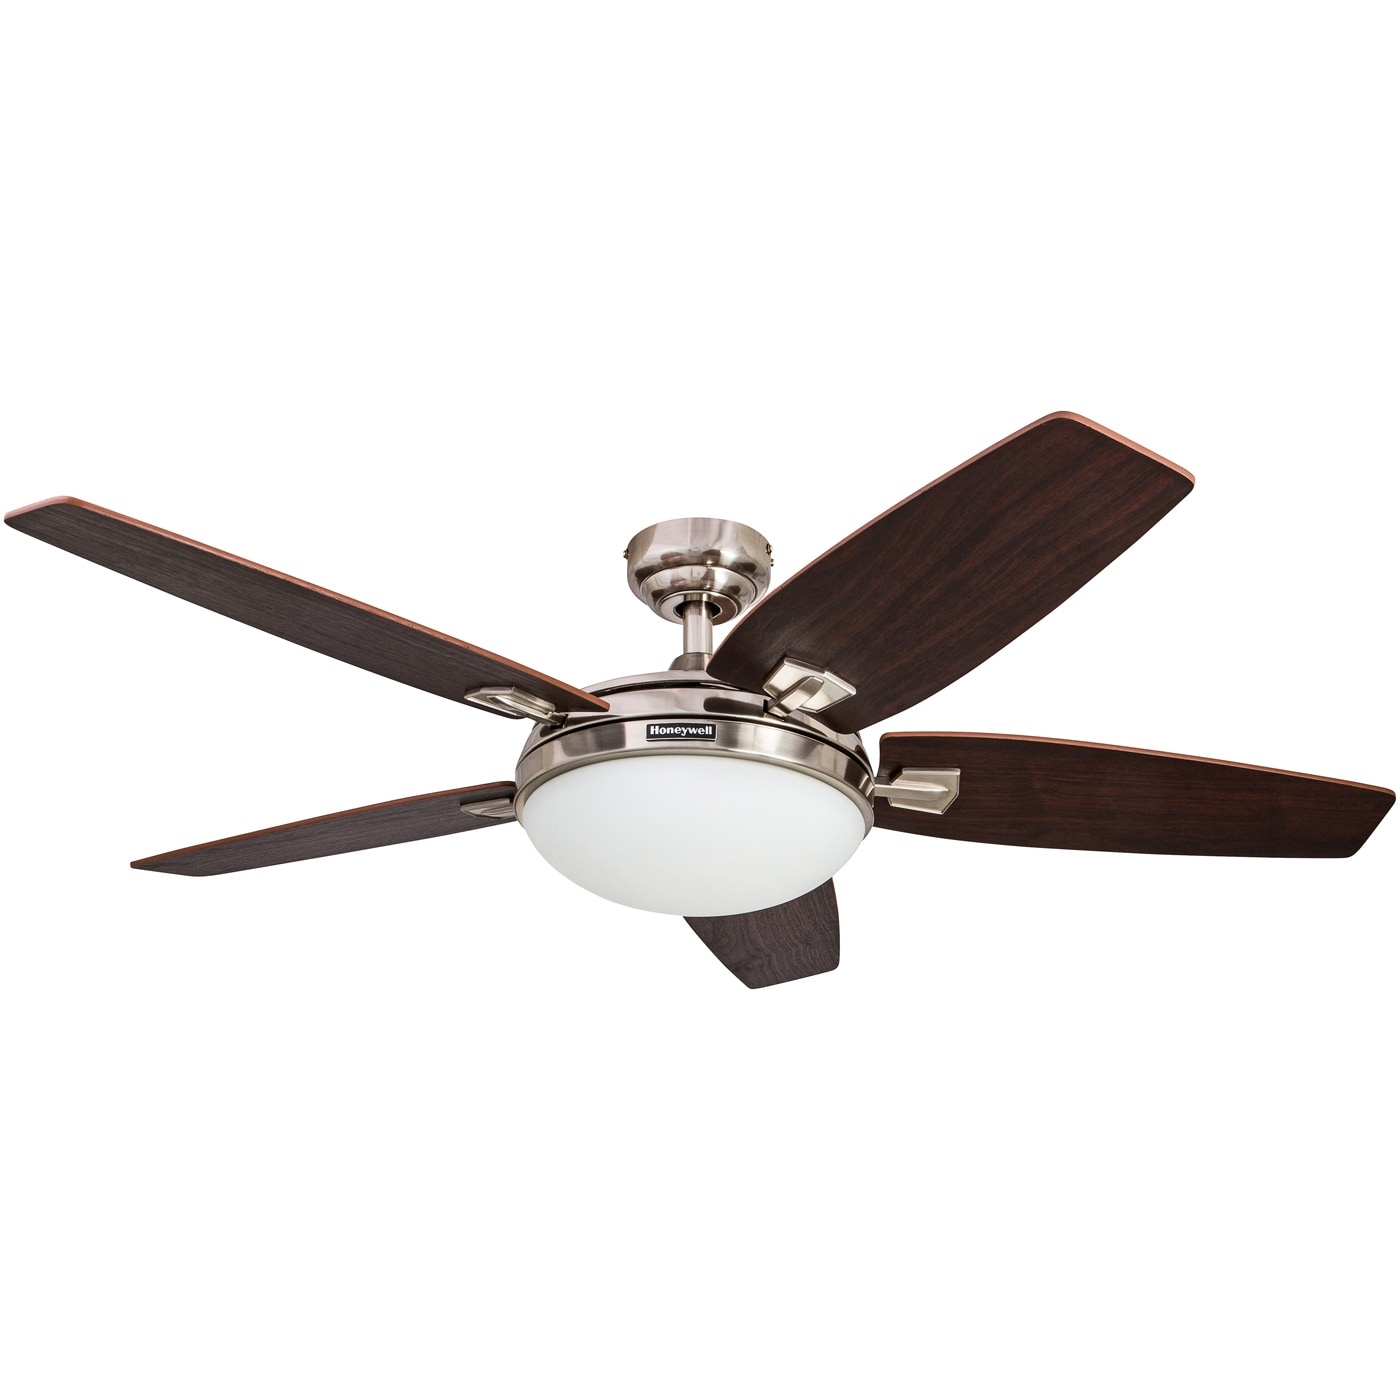 Brushed Nickel Ceiling Fan with Integrated Light and Remote